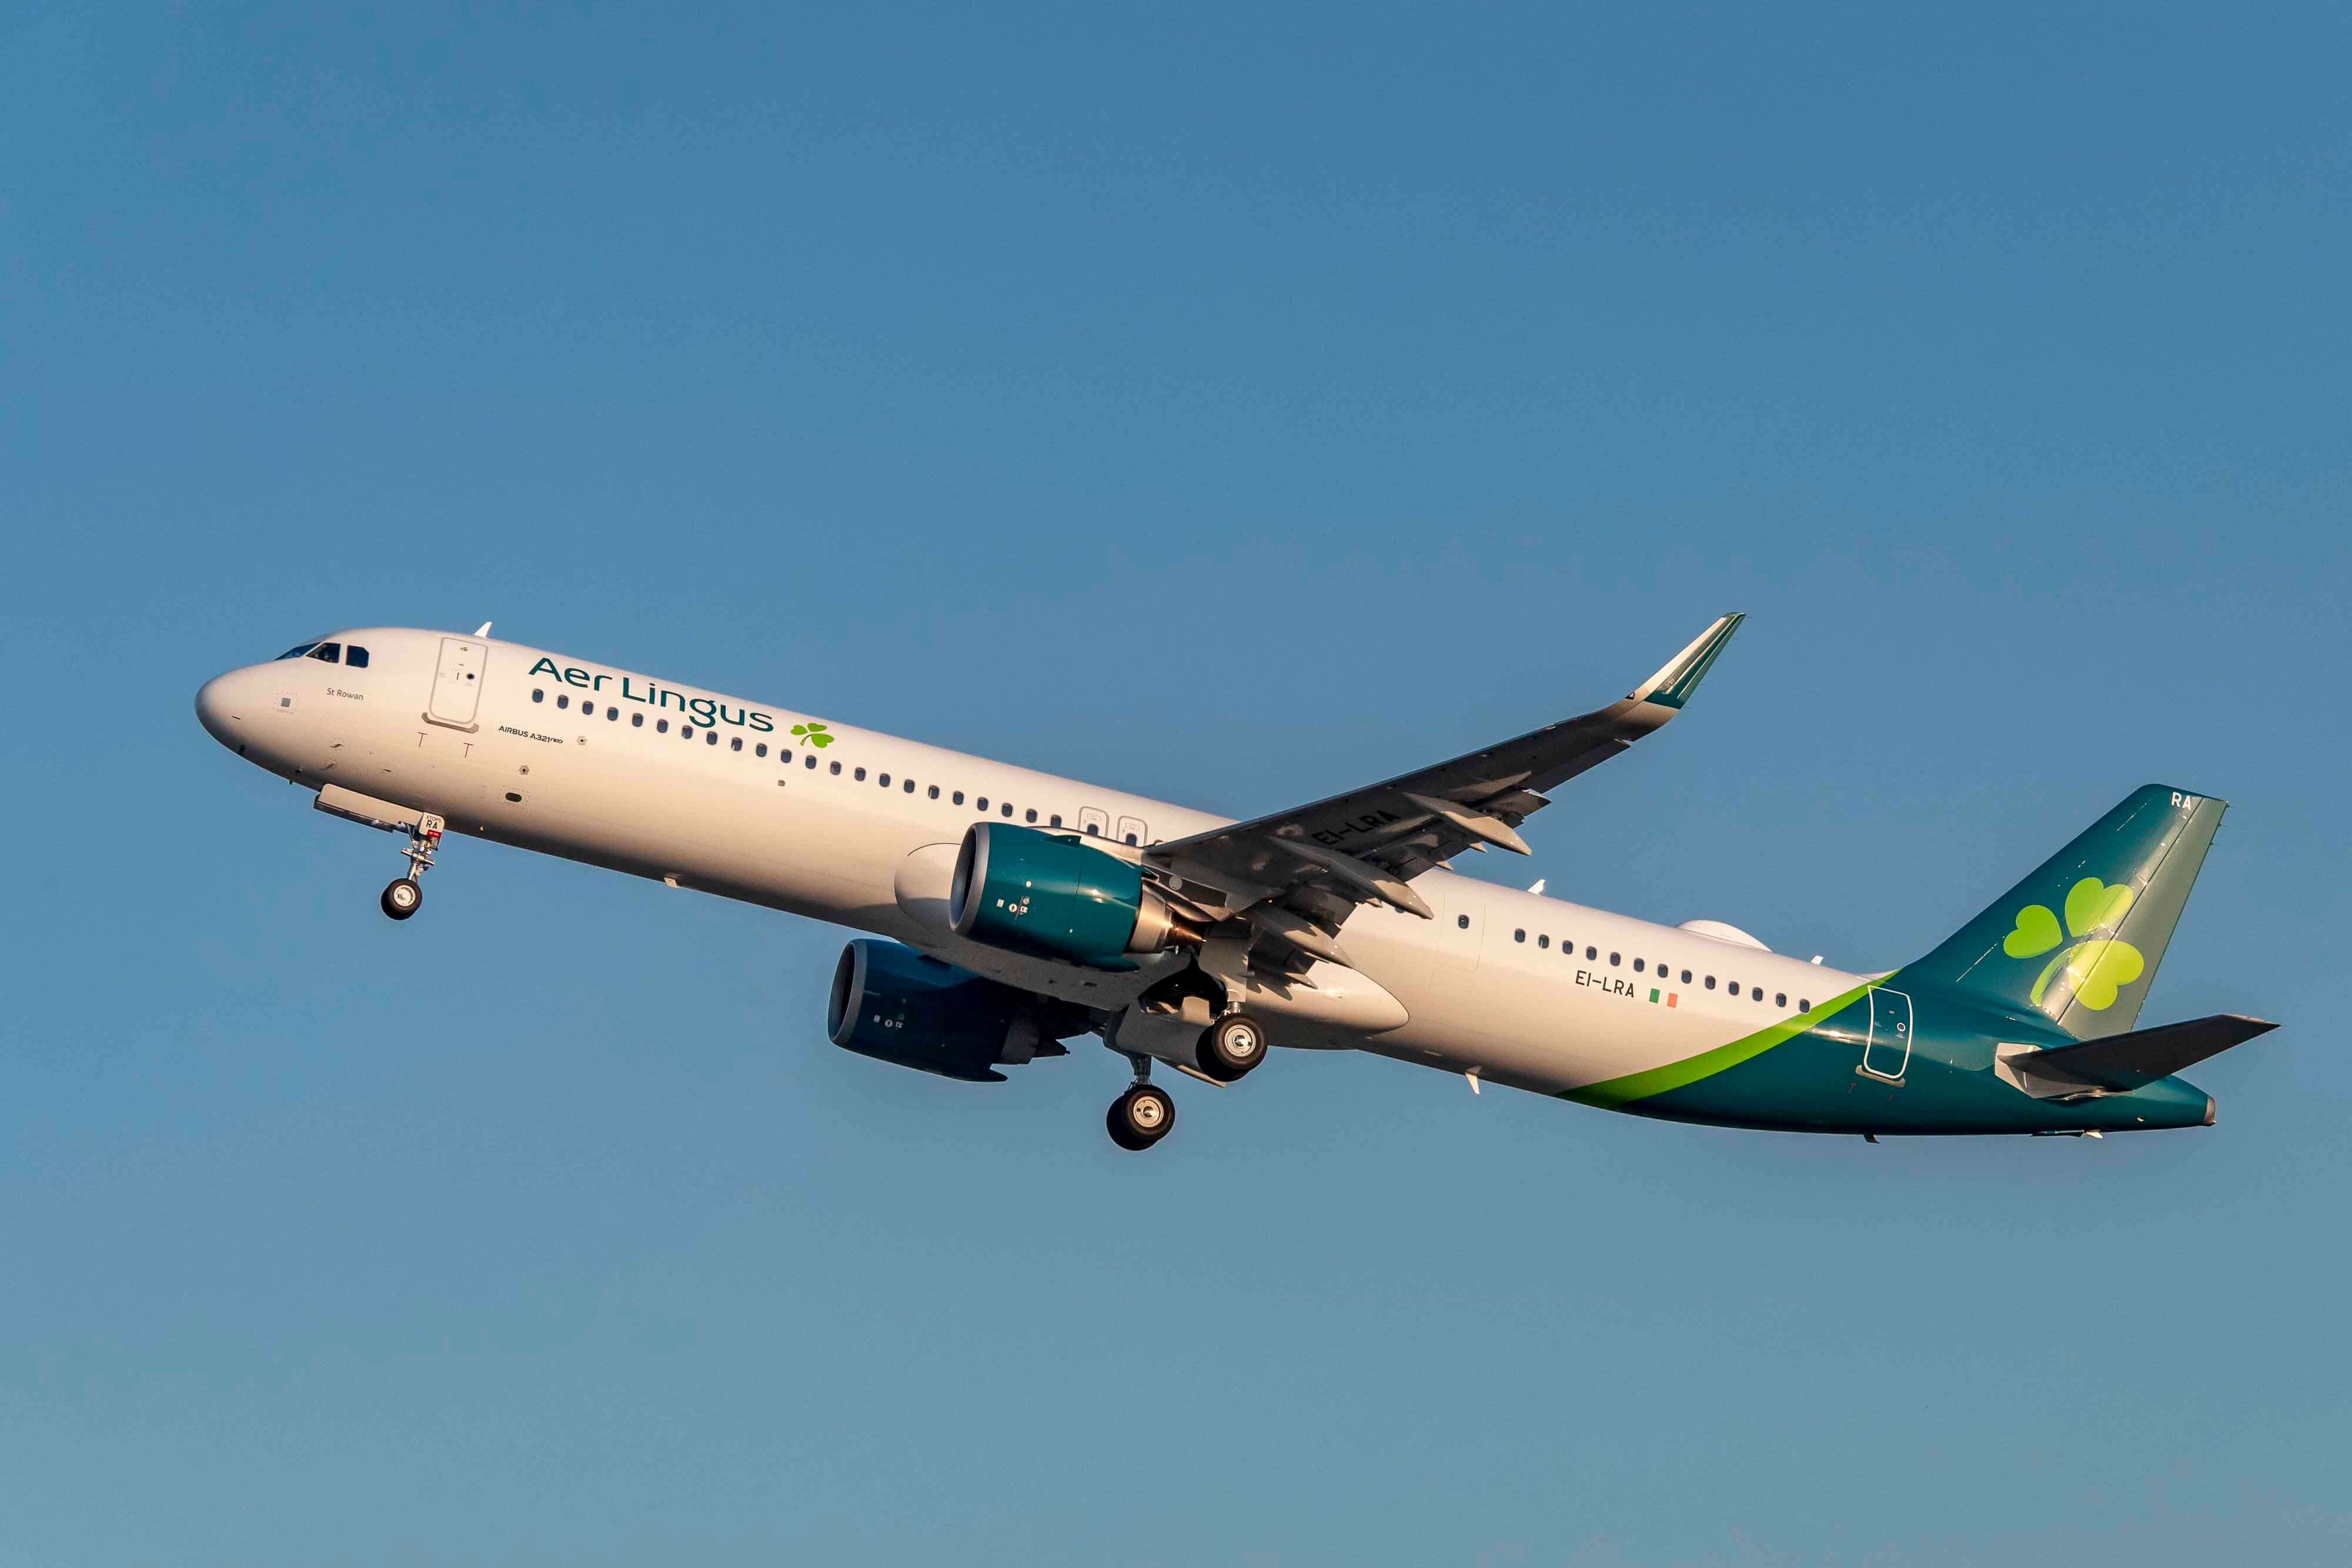 Aer Lingus takes delivery of its first Airbus A321LR